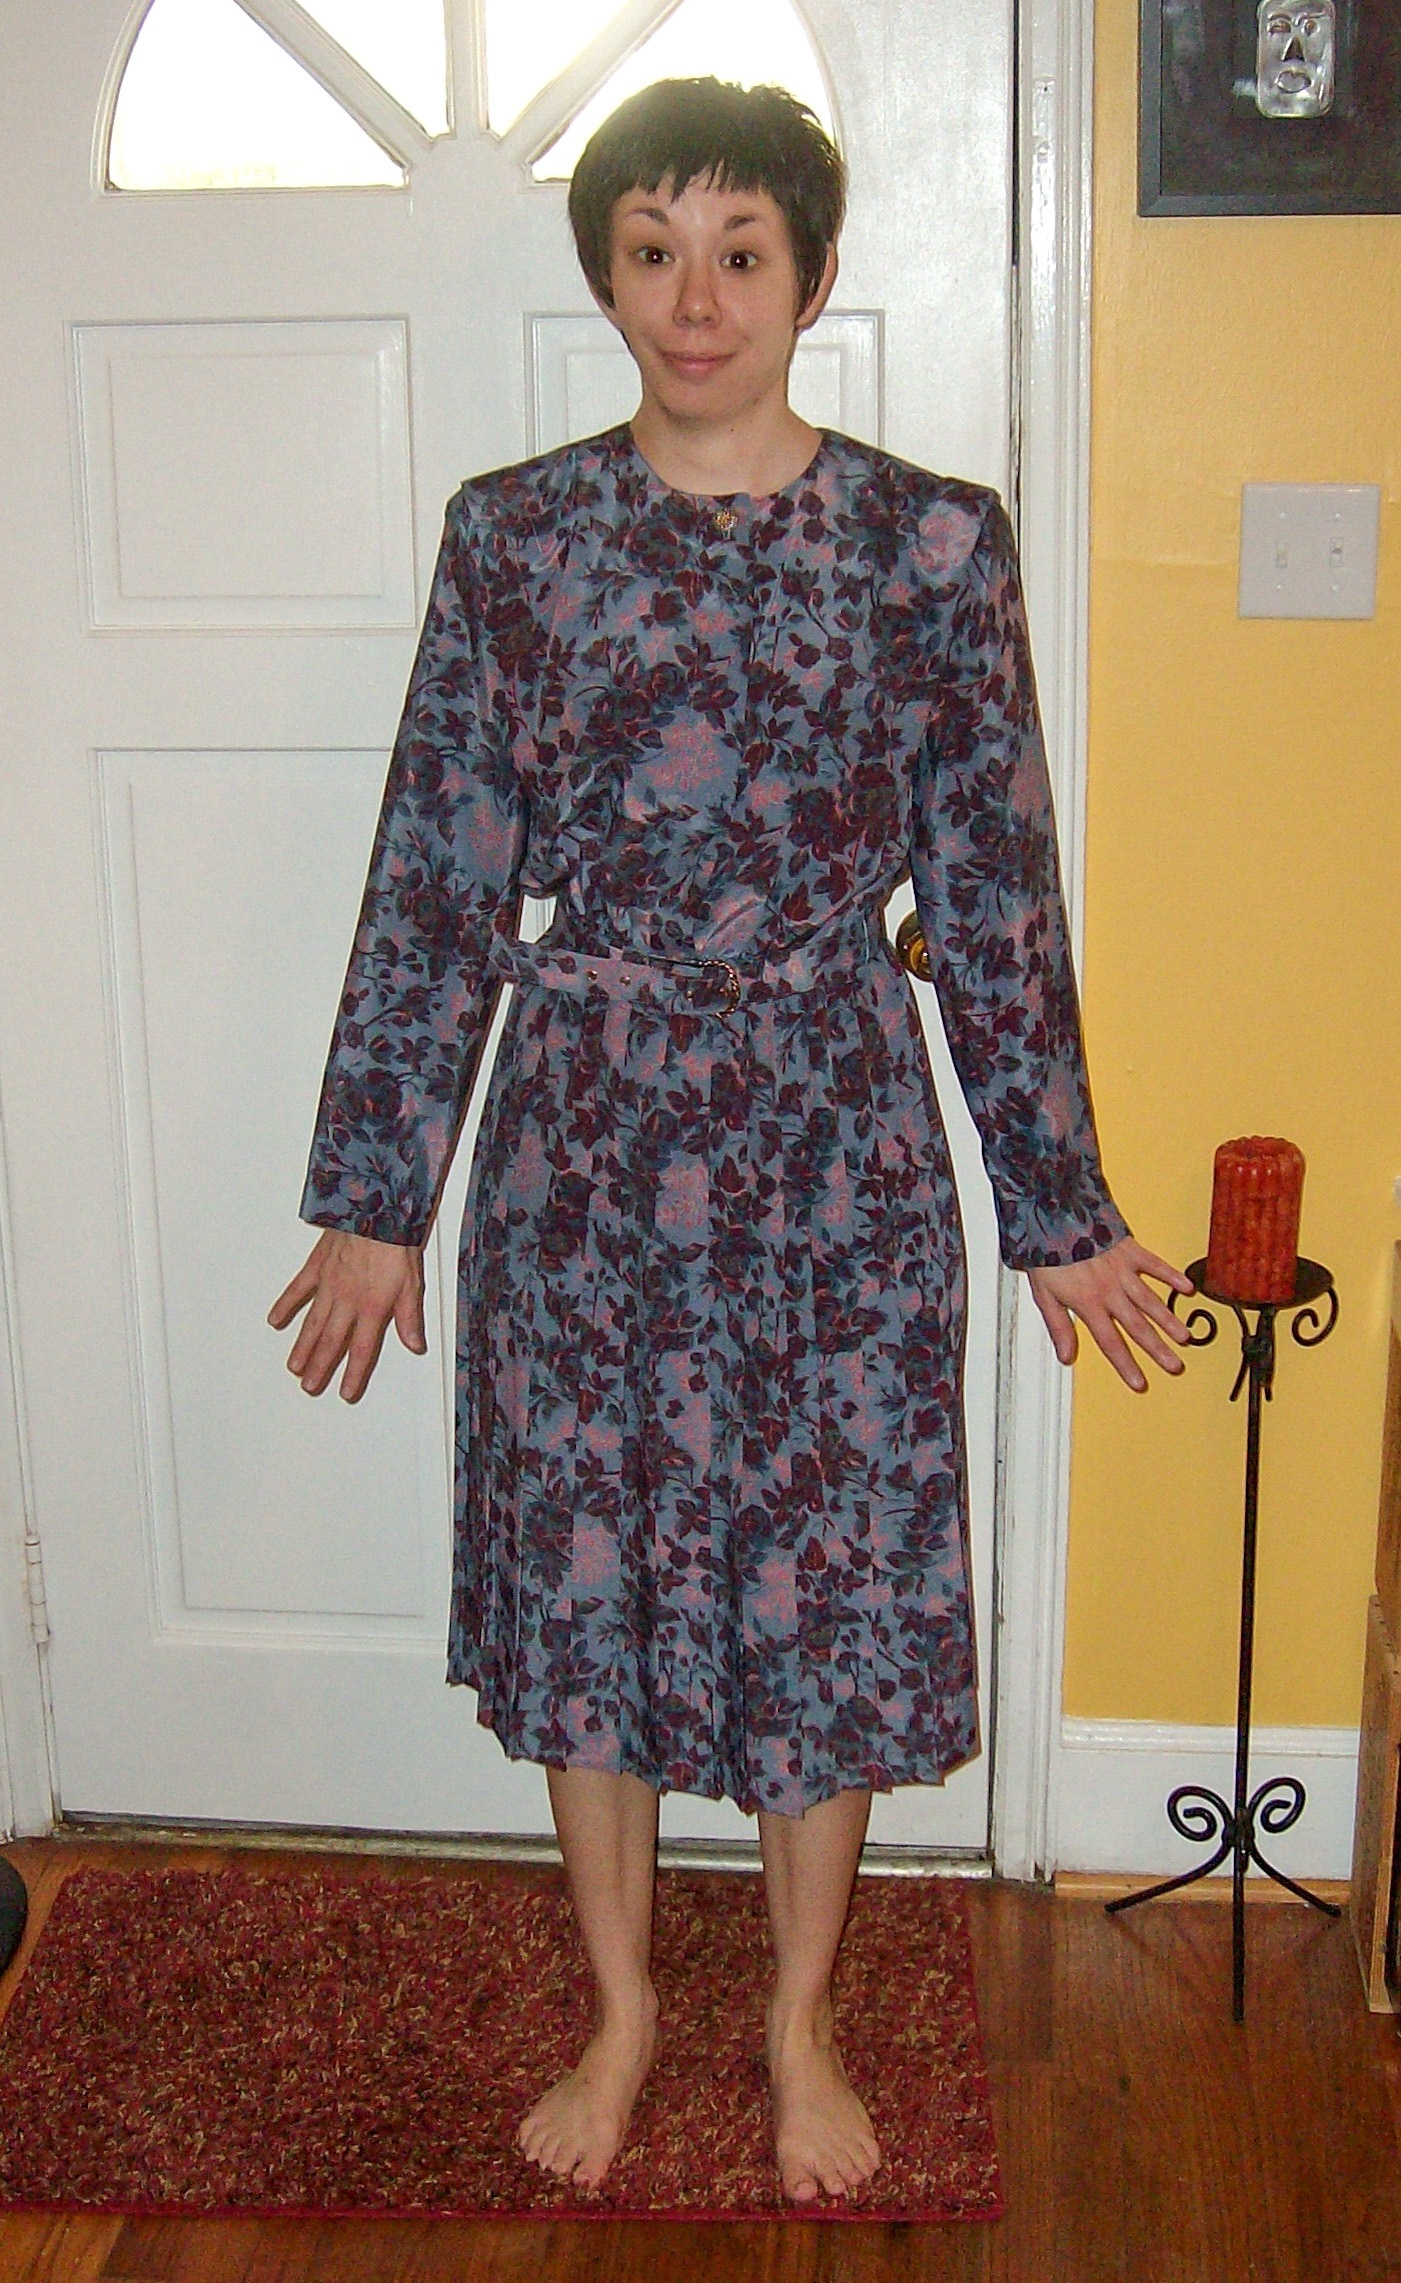 How to Update a '90s Dress by Shortening the Hem and Sleeves before